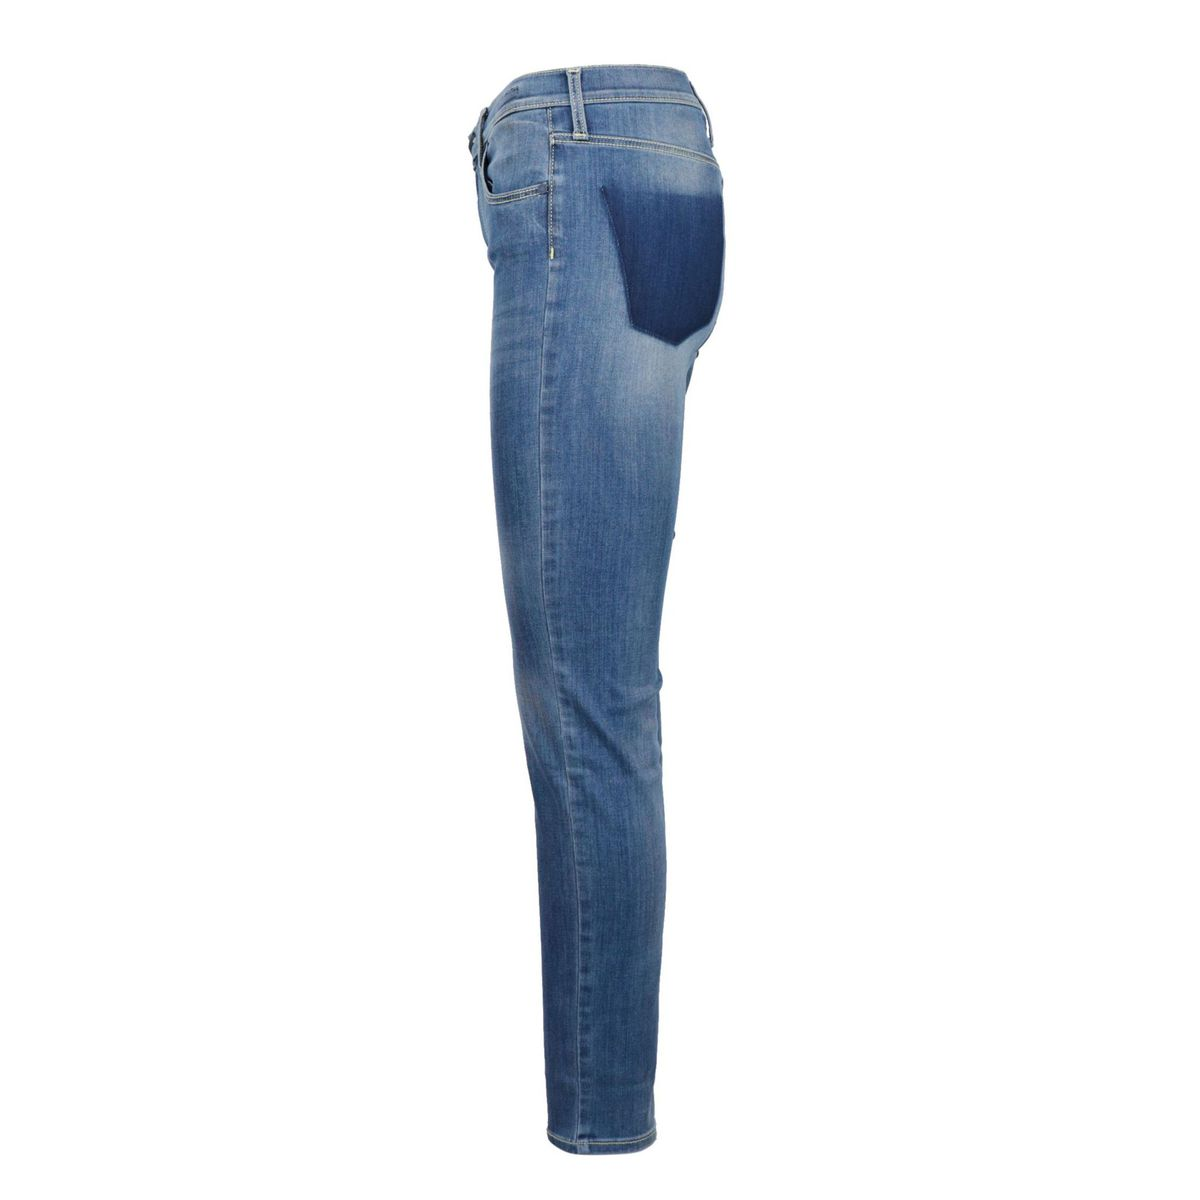 Medium denim Kimberly Slim jeans Blue / denim Jacob Cohen